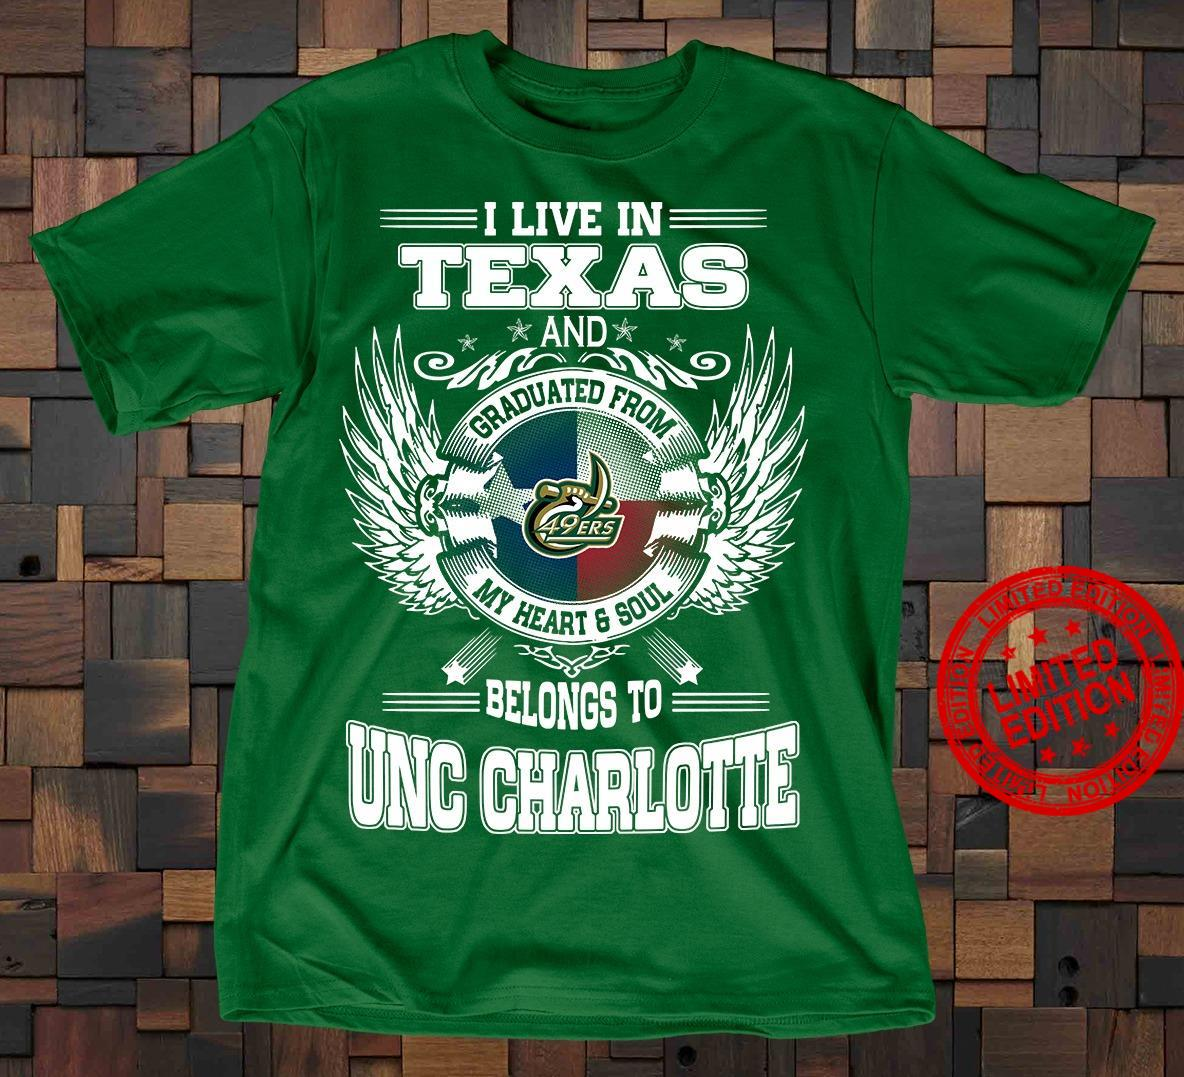 I Live In Texas And Graduated From My Heart & Soul Belongs To UNC Charlotte Shirt